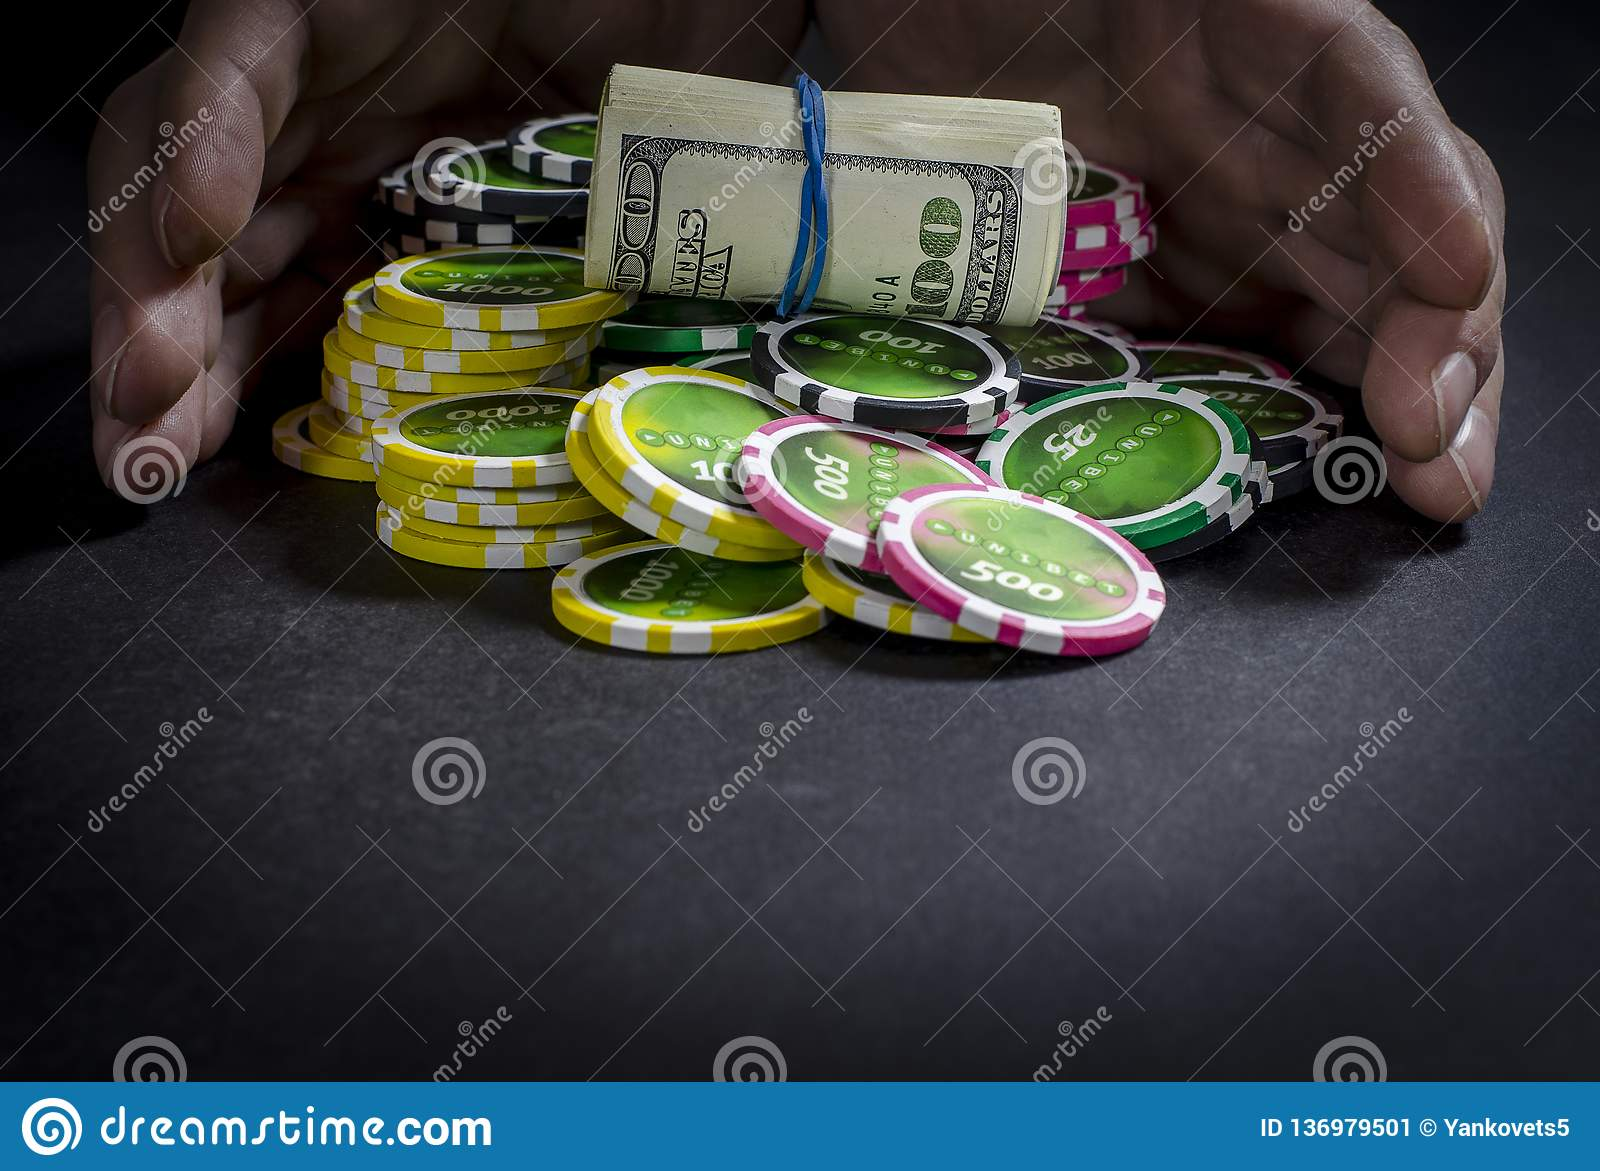 Person playing poker and looking at cards